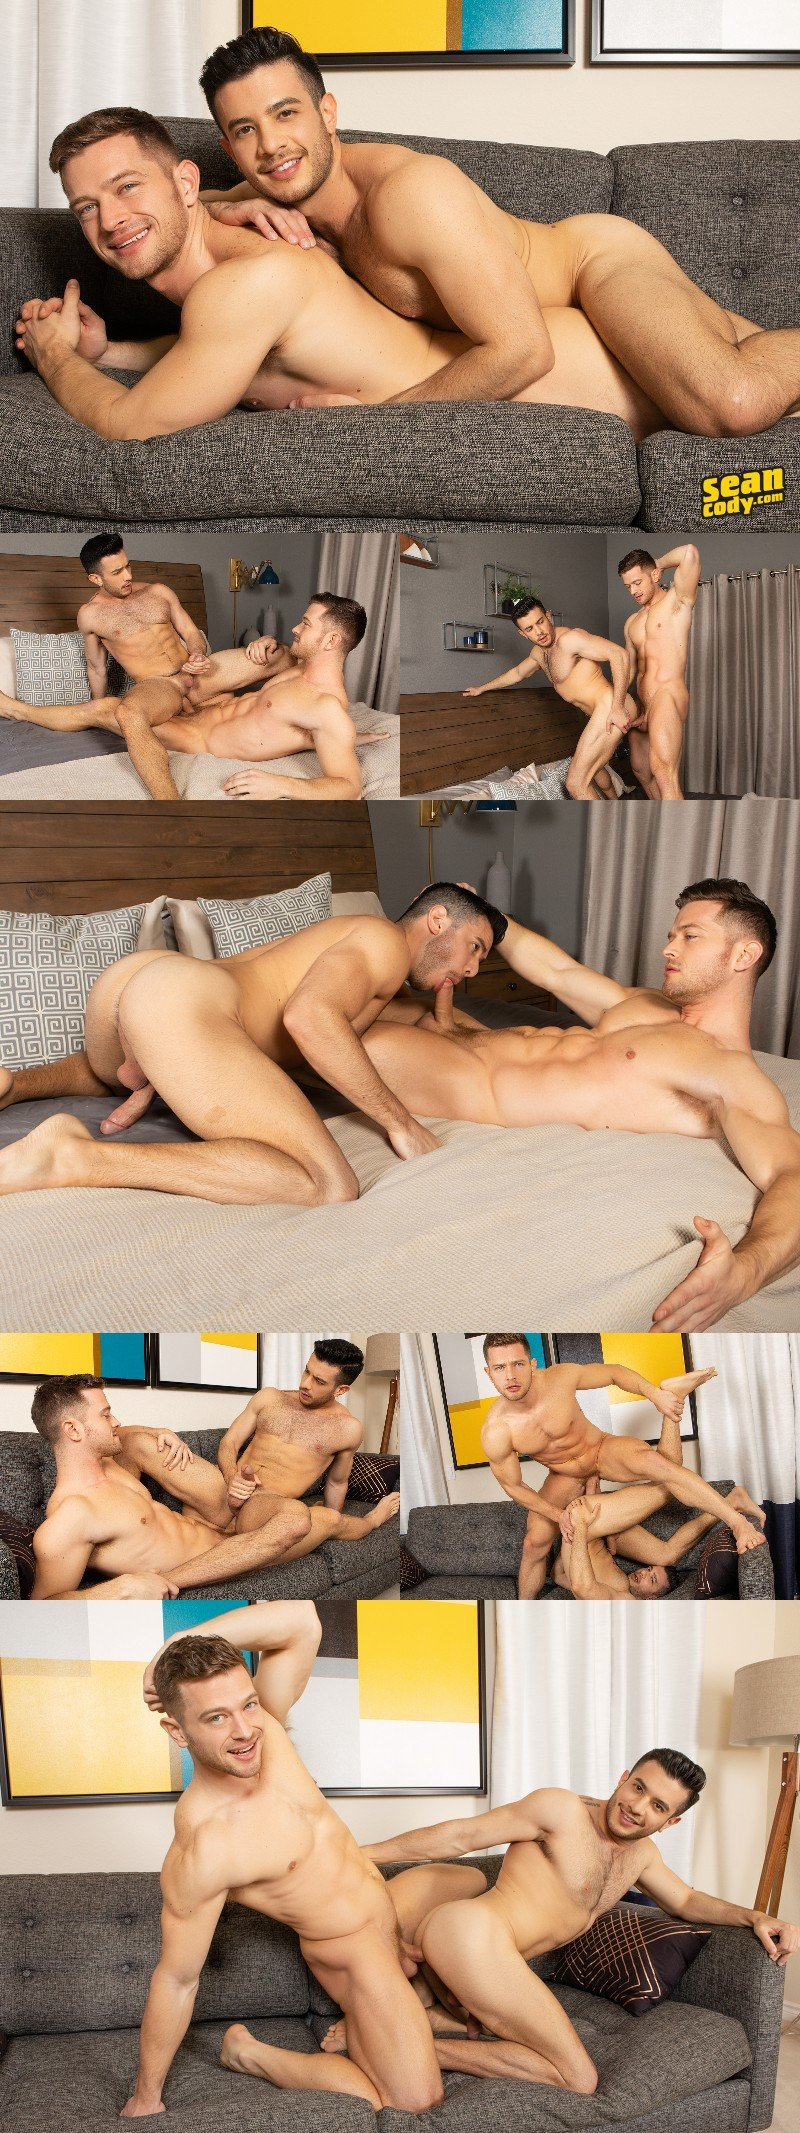 Is This The Best Sean Cody Fuck Scene of 2019?